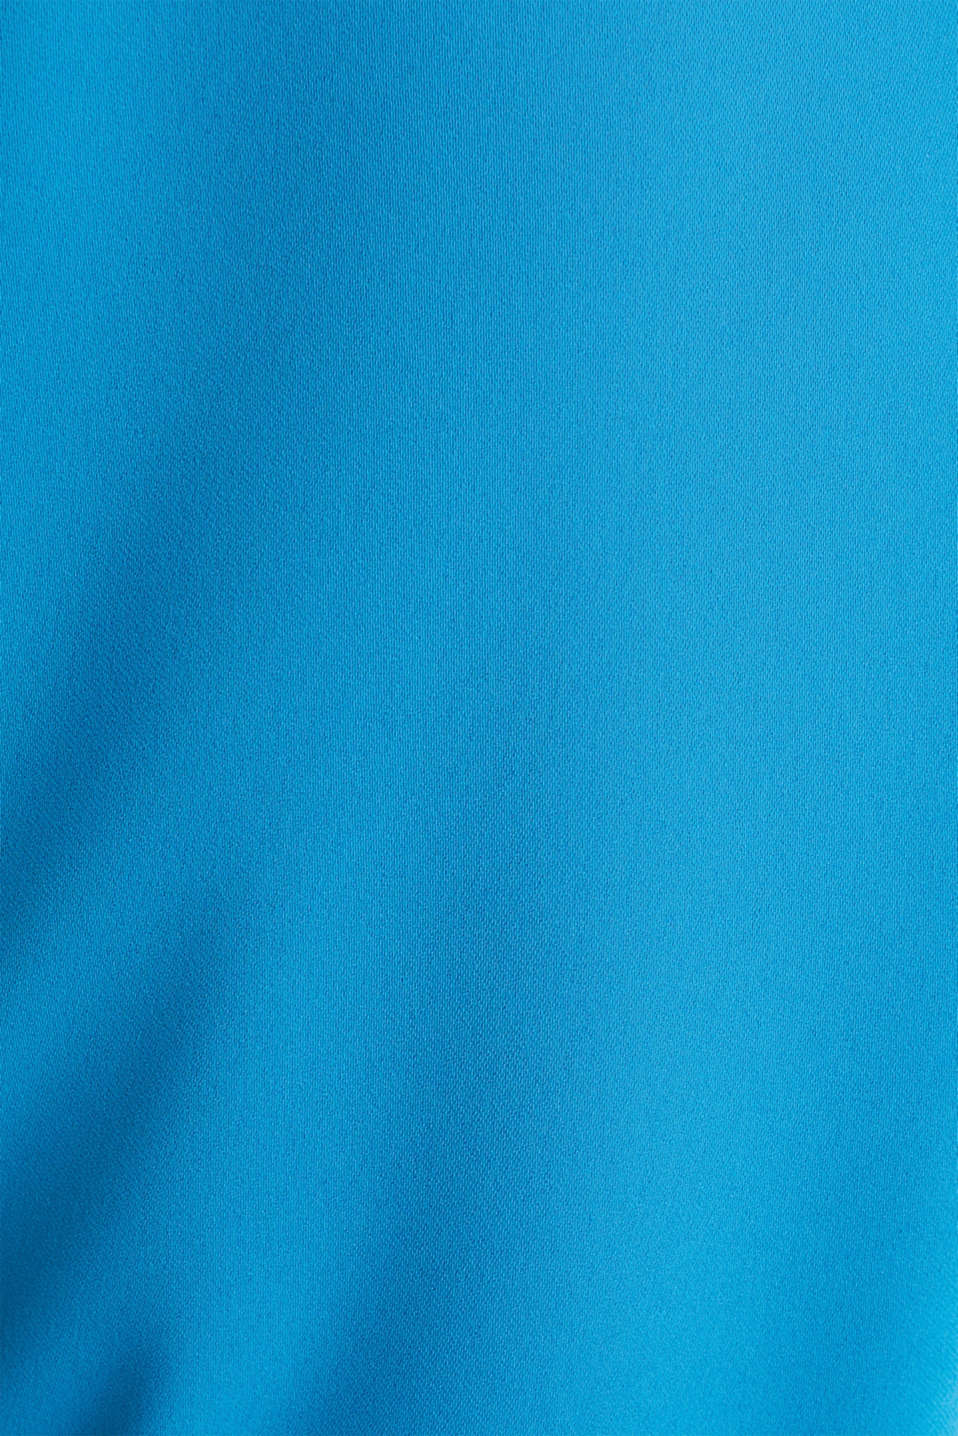 Cloth polo neck dress, DARK TURQUOISE, detail image number 4